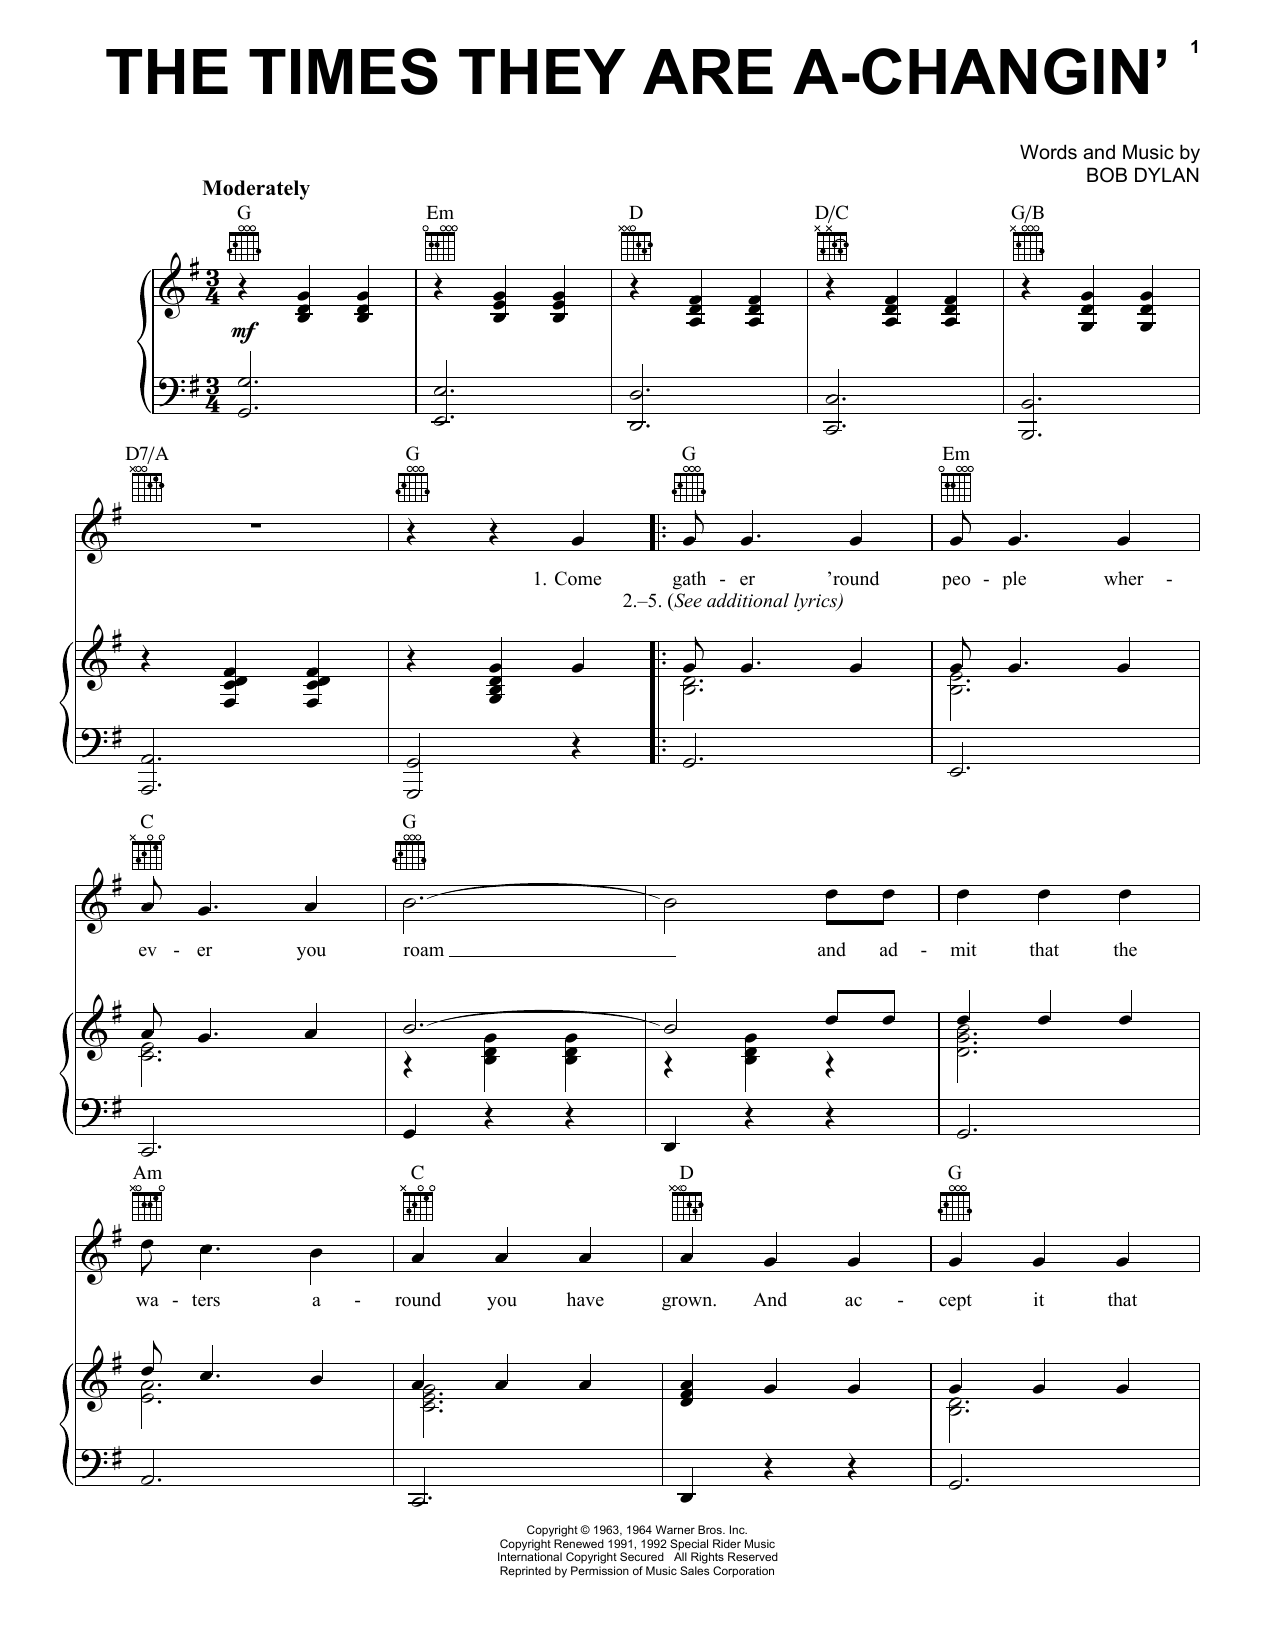 Billy Joel The Times They Are A Changin' Sheet Music Notes, Chords    Download Printable Piano, Vocal & Guitar Right Hand Melody PDF Score    SKU ...